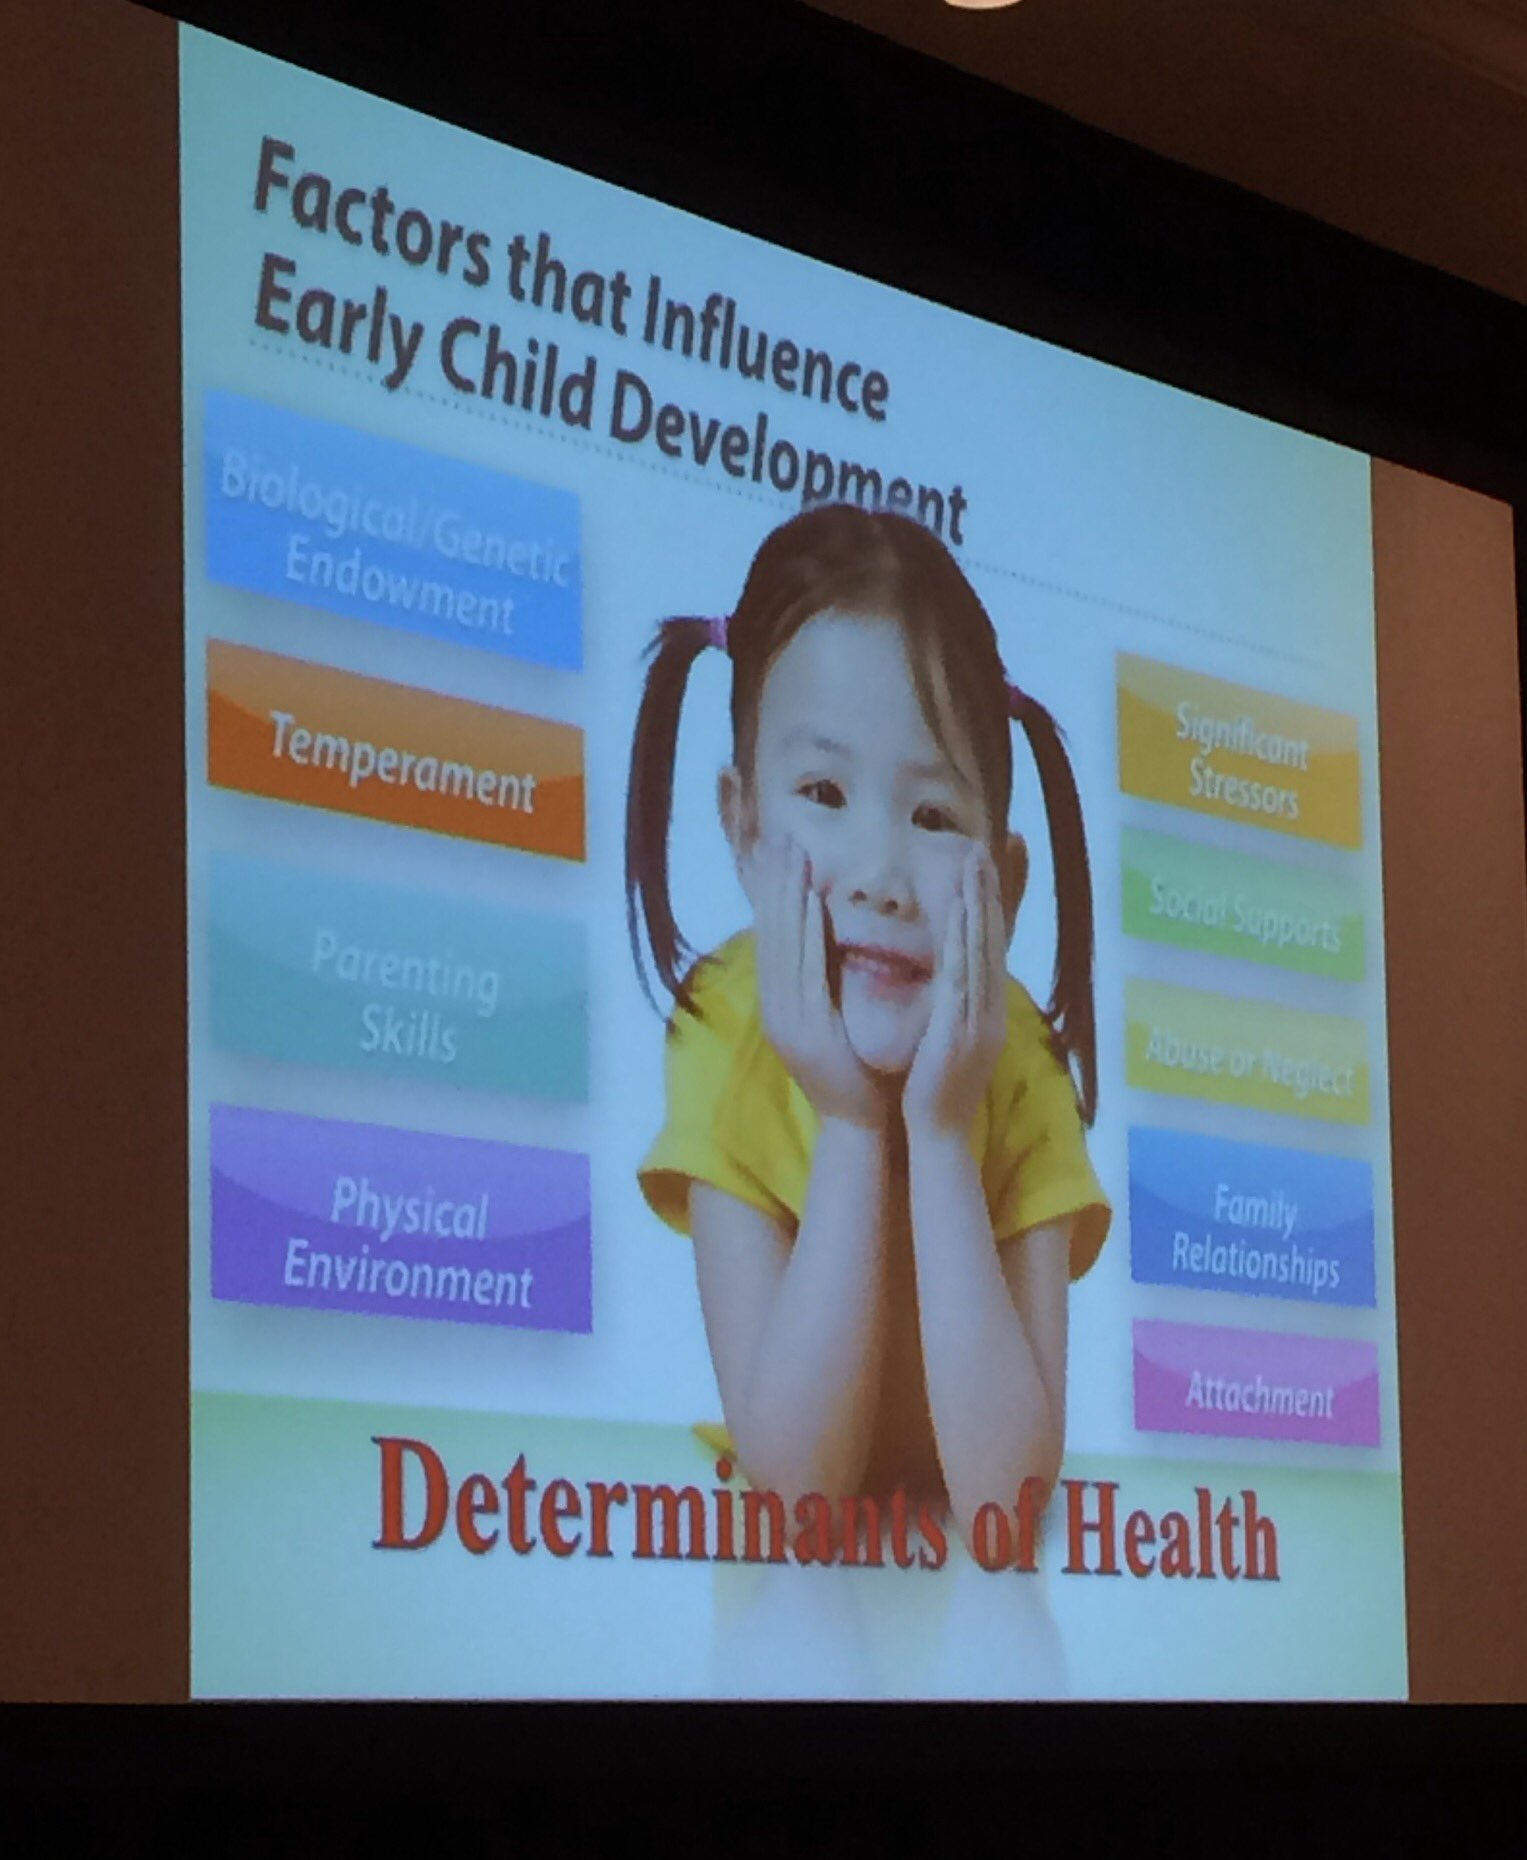 Social determinants of health are much more important than genetics says Dr. Paul Roumeliotis #wellness #success #BSRC2017 https://t.co/uPAXPAS3Zm